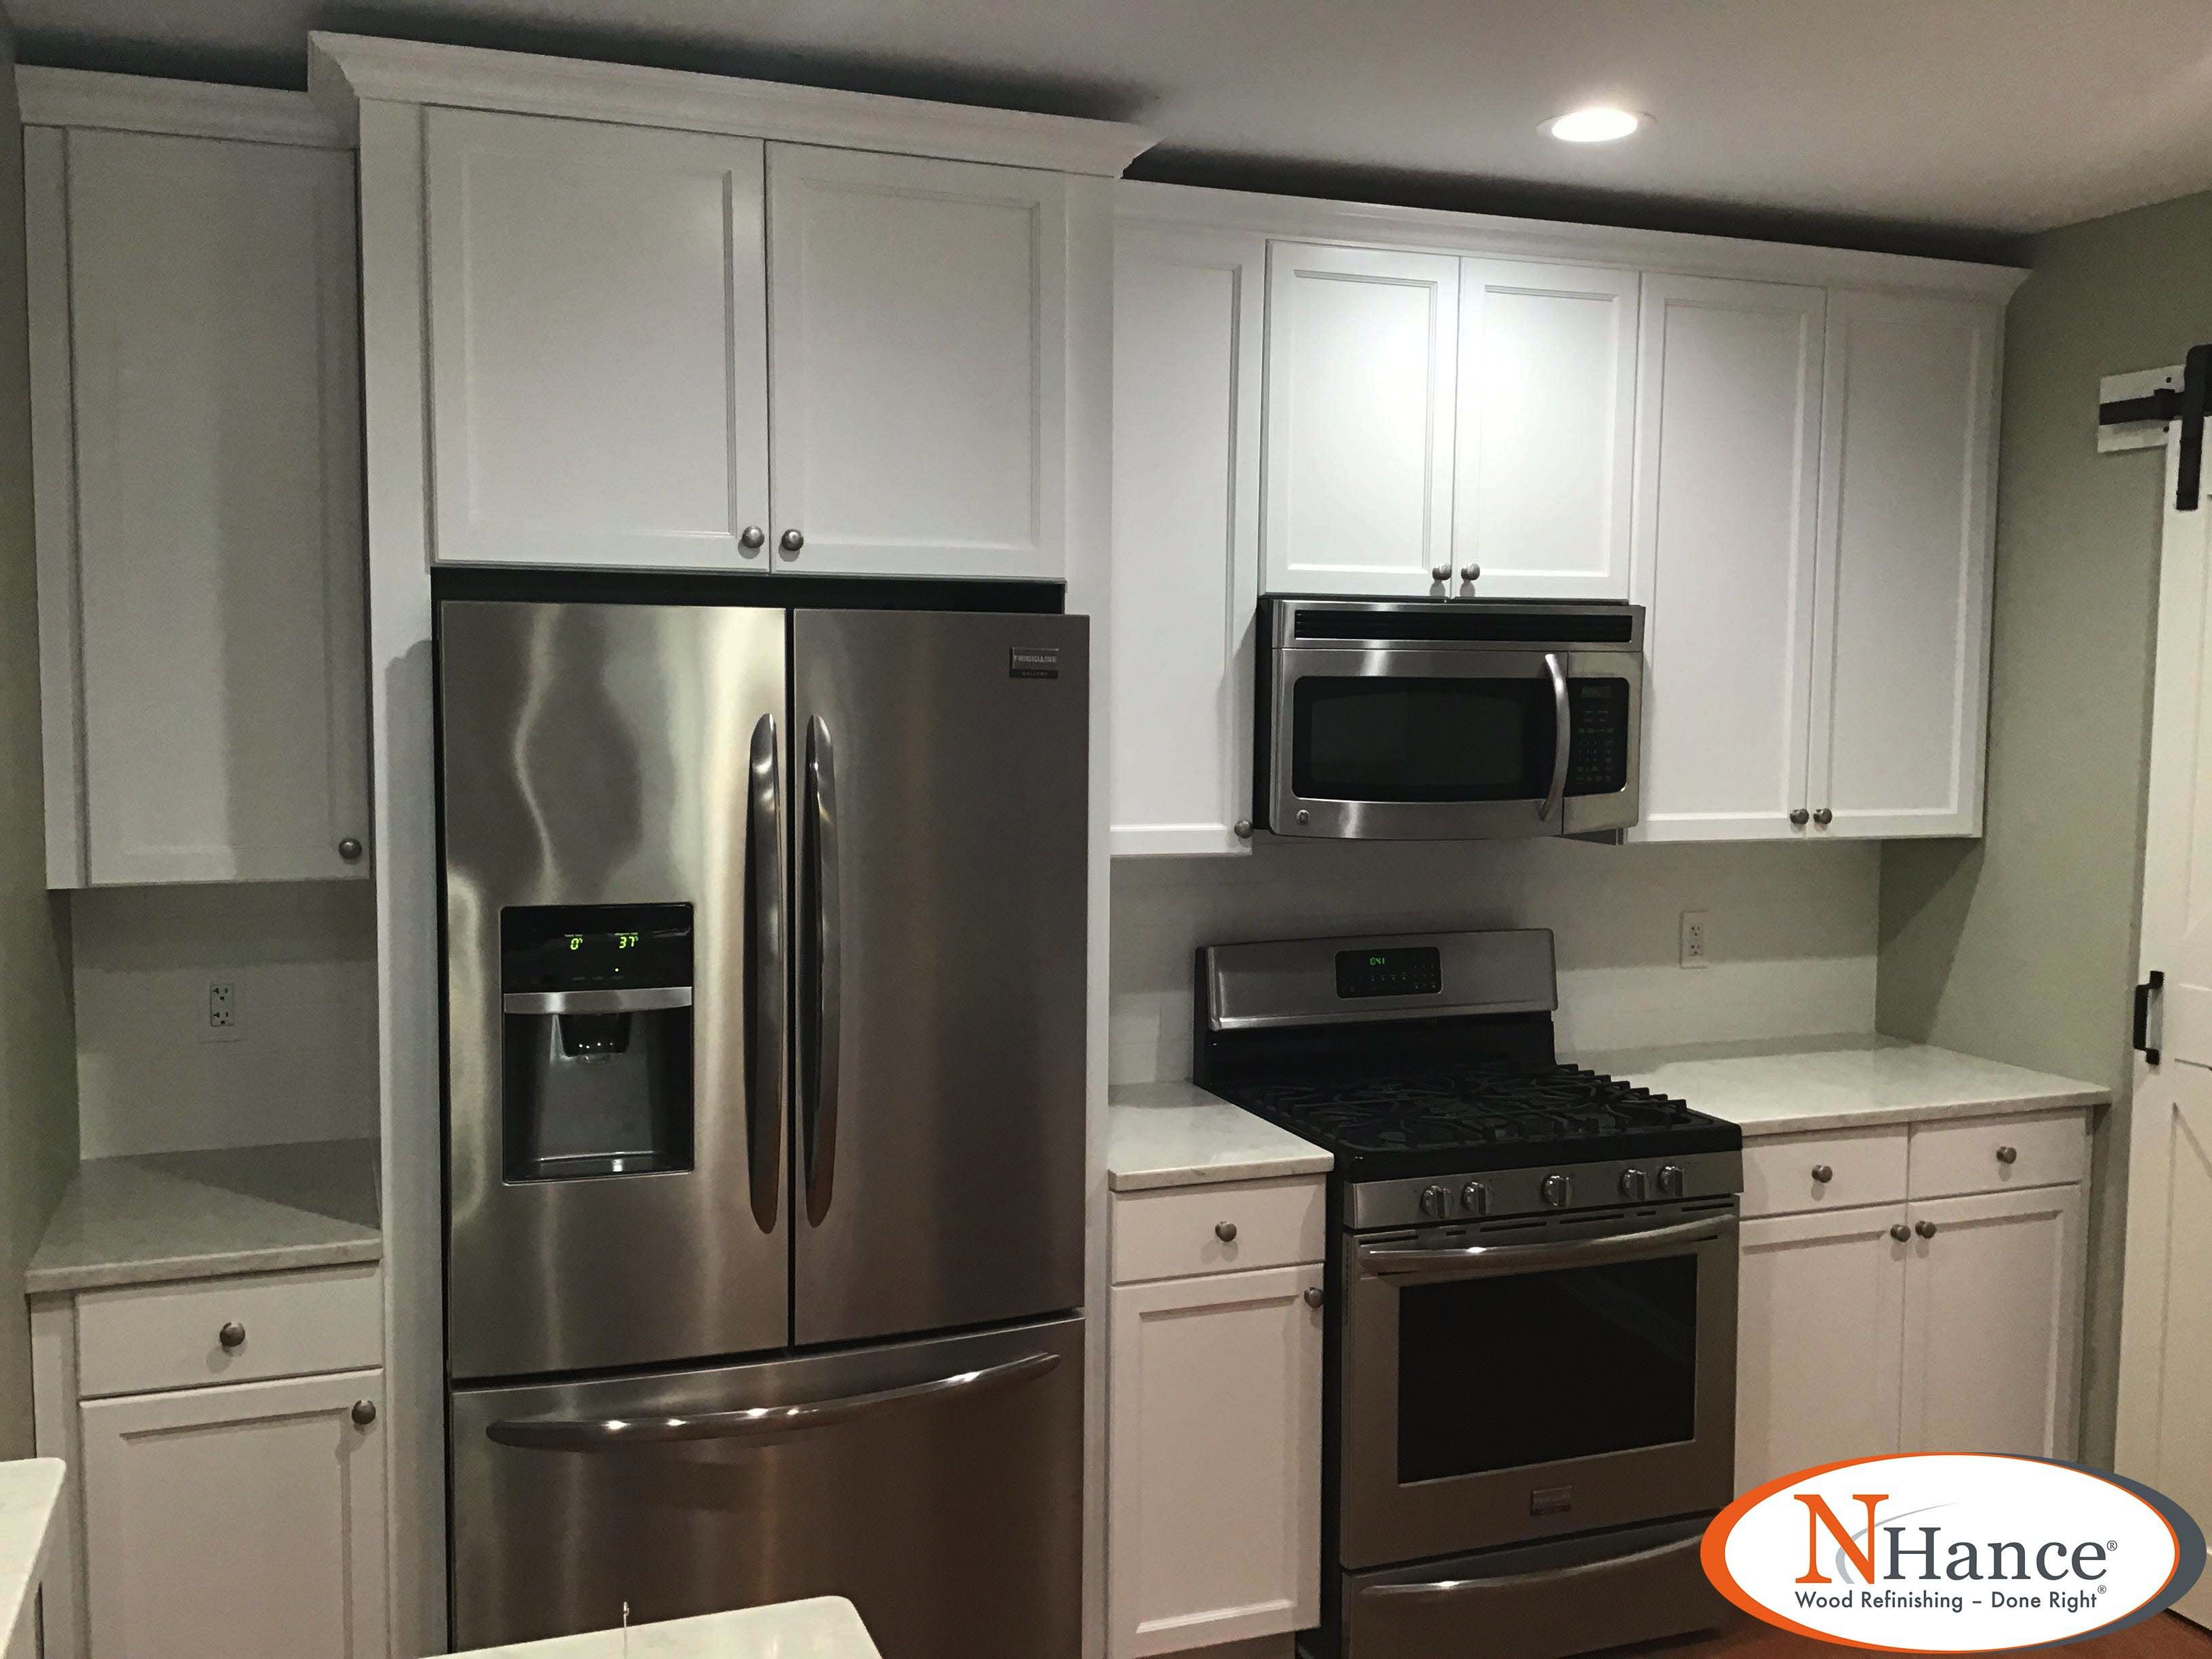 N Hance Cabinet Color Change In 2020 Refinishing Cabinets Wood Refinishing Cabinet Colors